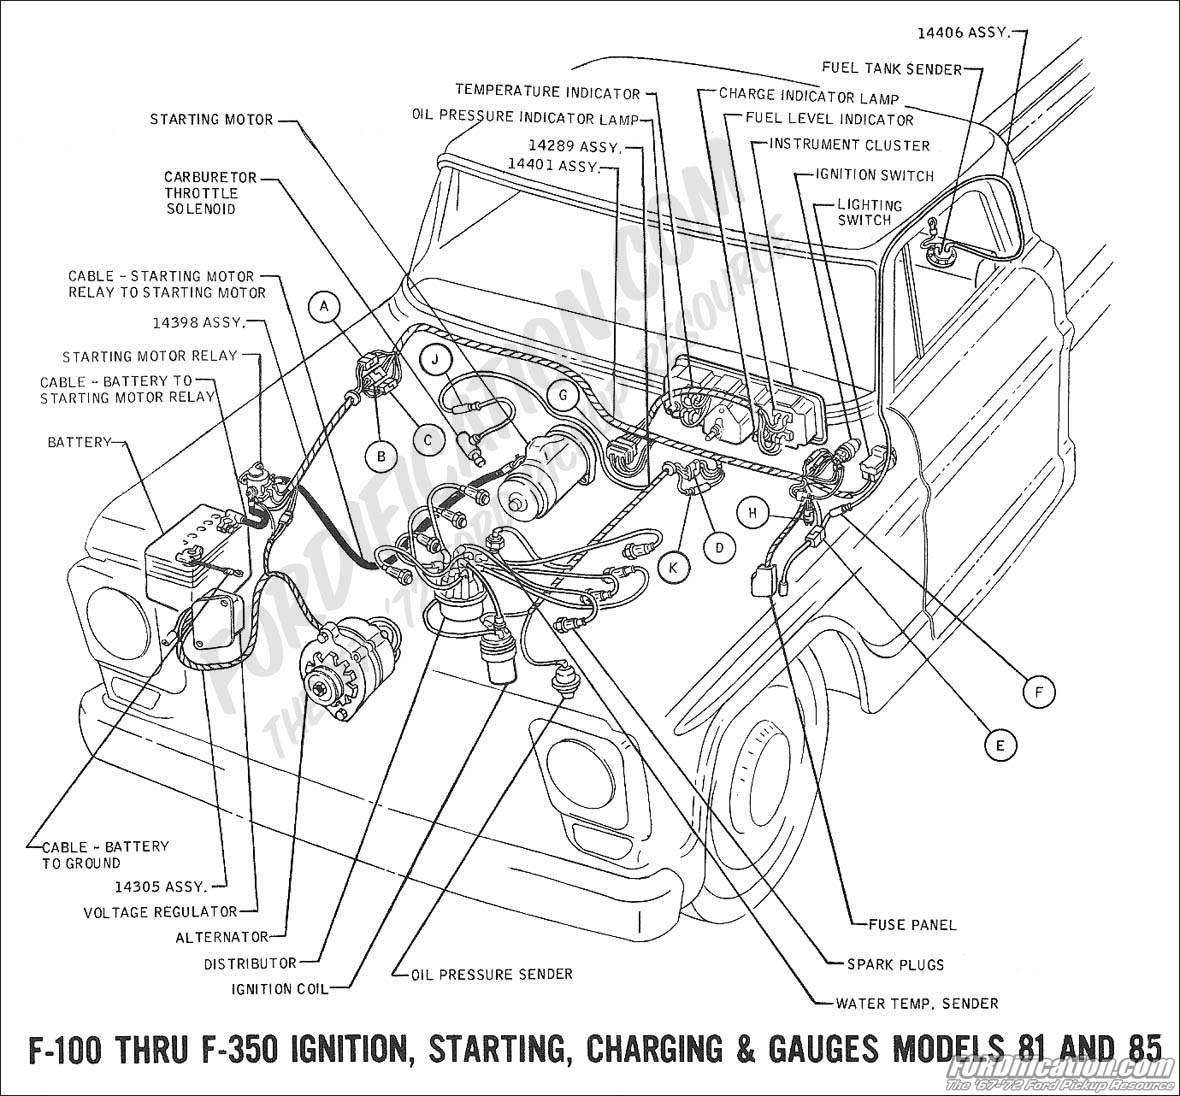 Wiring Diagram For 1972 Mustang 351 Cleveland also 69 Chevy Truck Coil Wiring Diagram besides 12 together with 1afa4 Spark Plug Wire Diagram 1991 Gma as well ww2 justanswer   uploads motoforge 2010 12 01 023809 wiring1. on electronic wiring diagram 75 ford